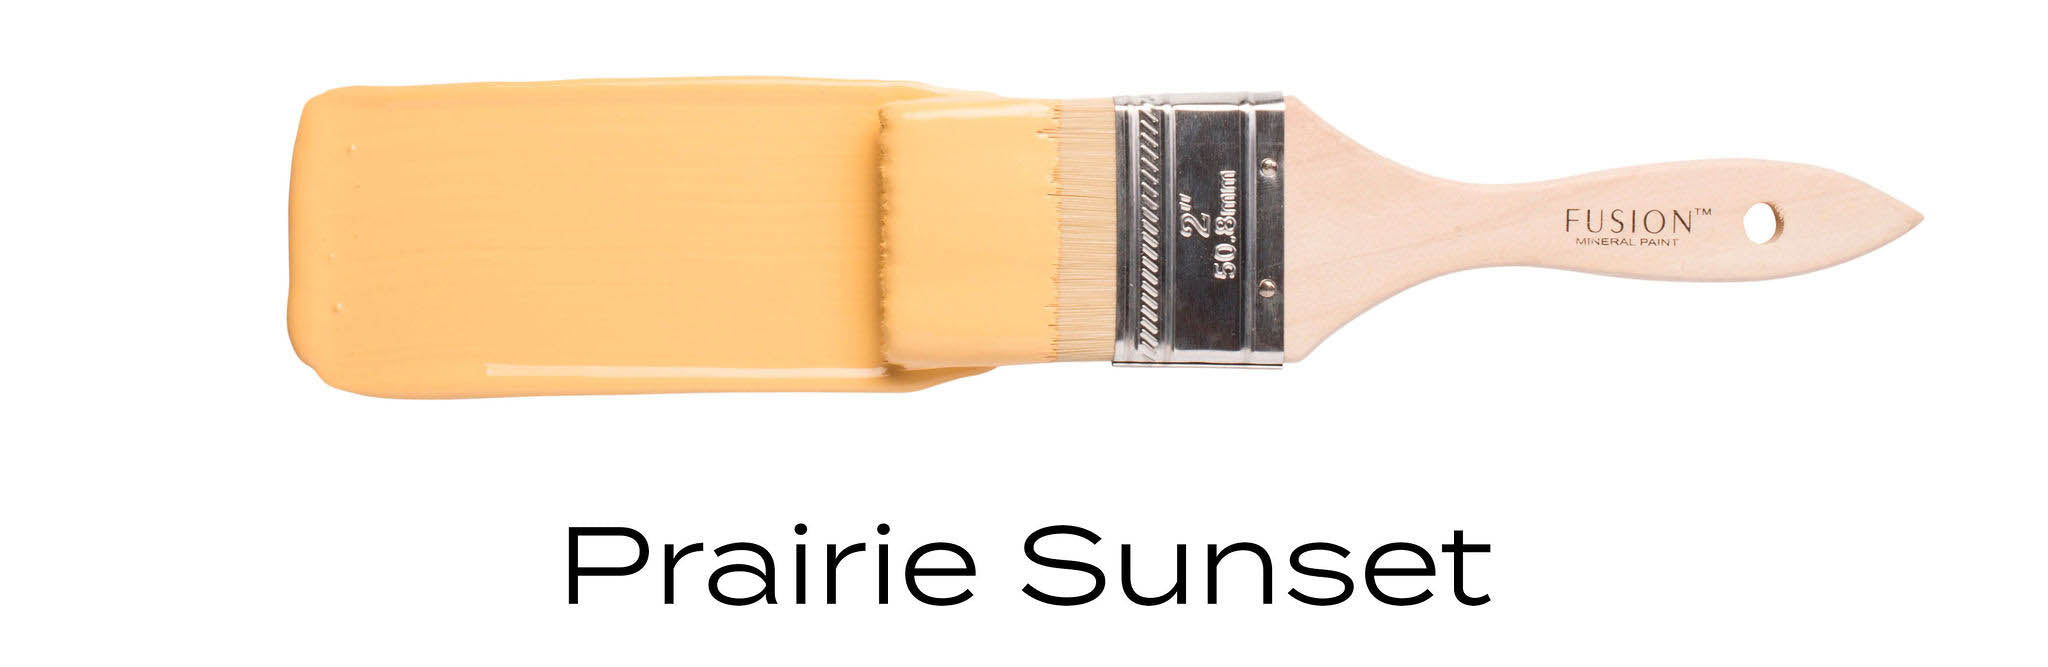 Prairie sunset yellow furniture paint on a brush by fusion mineral paint England uk stockist